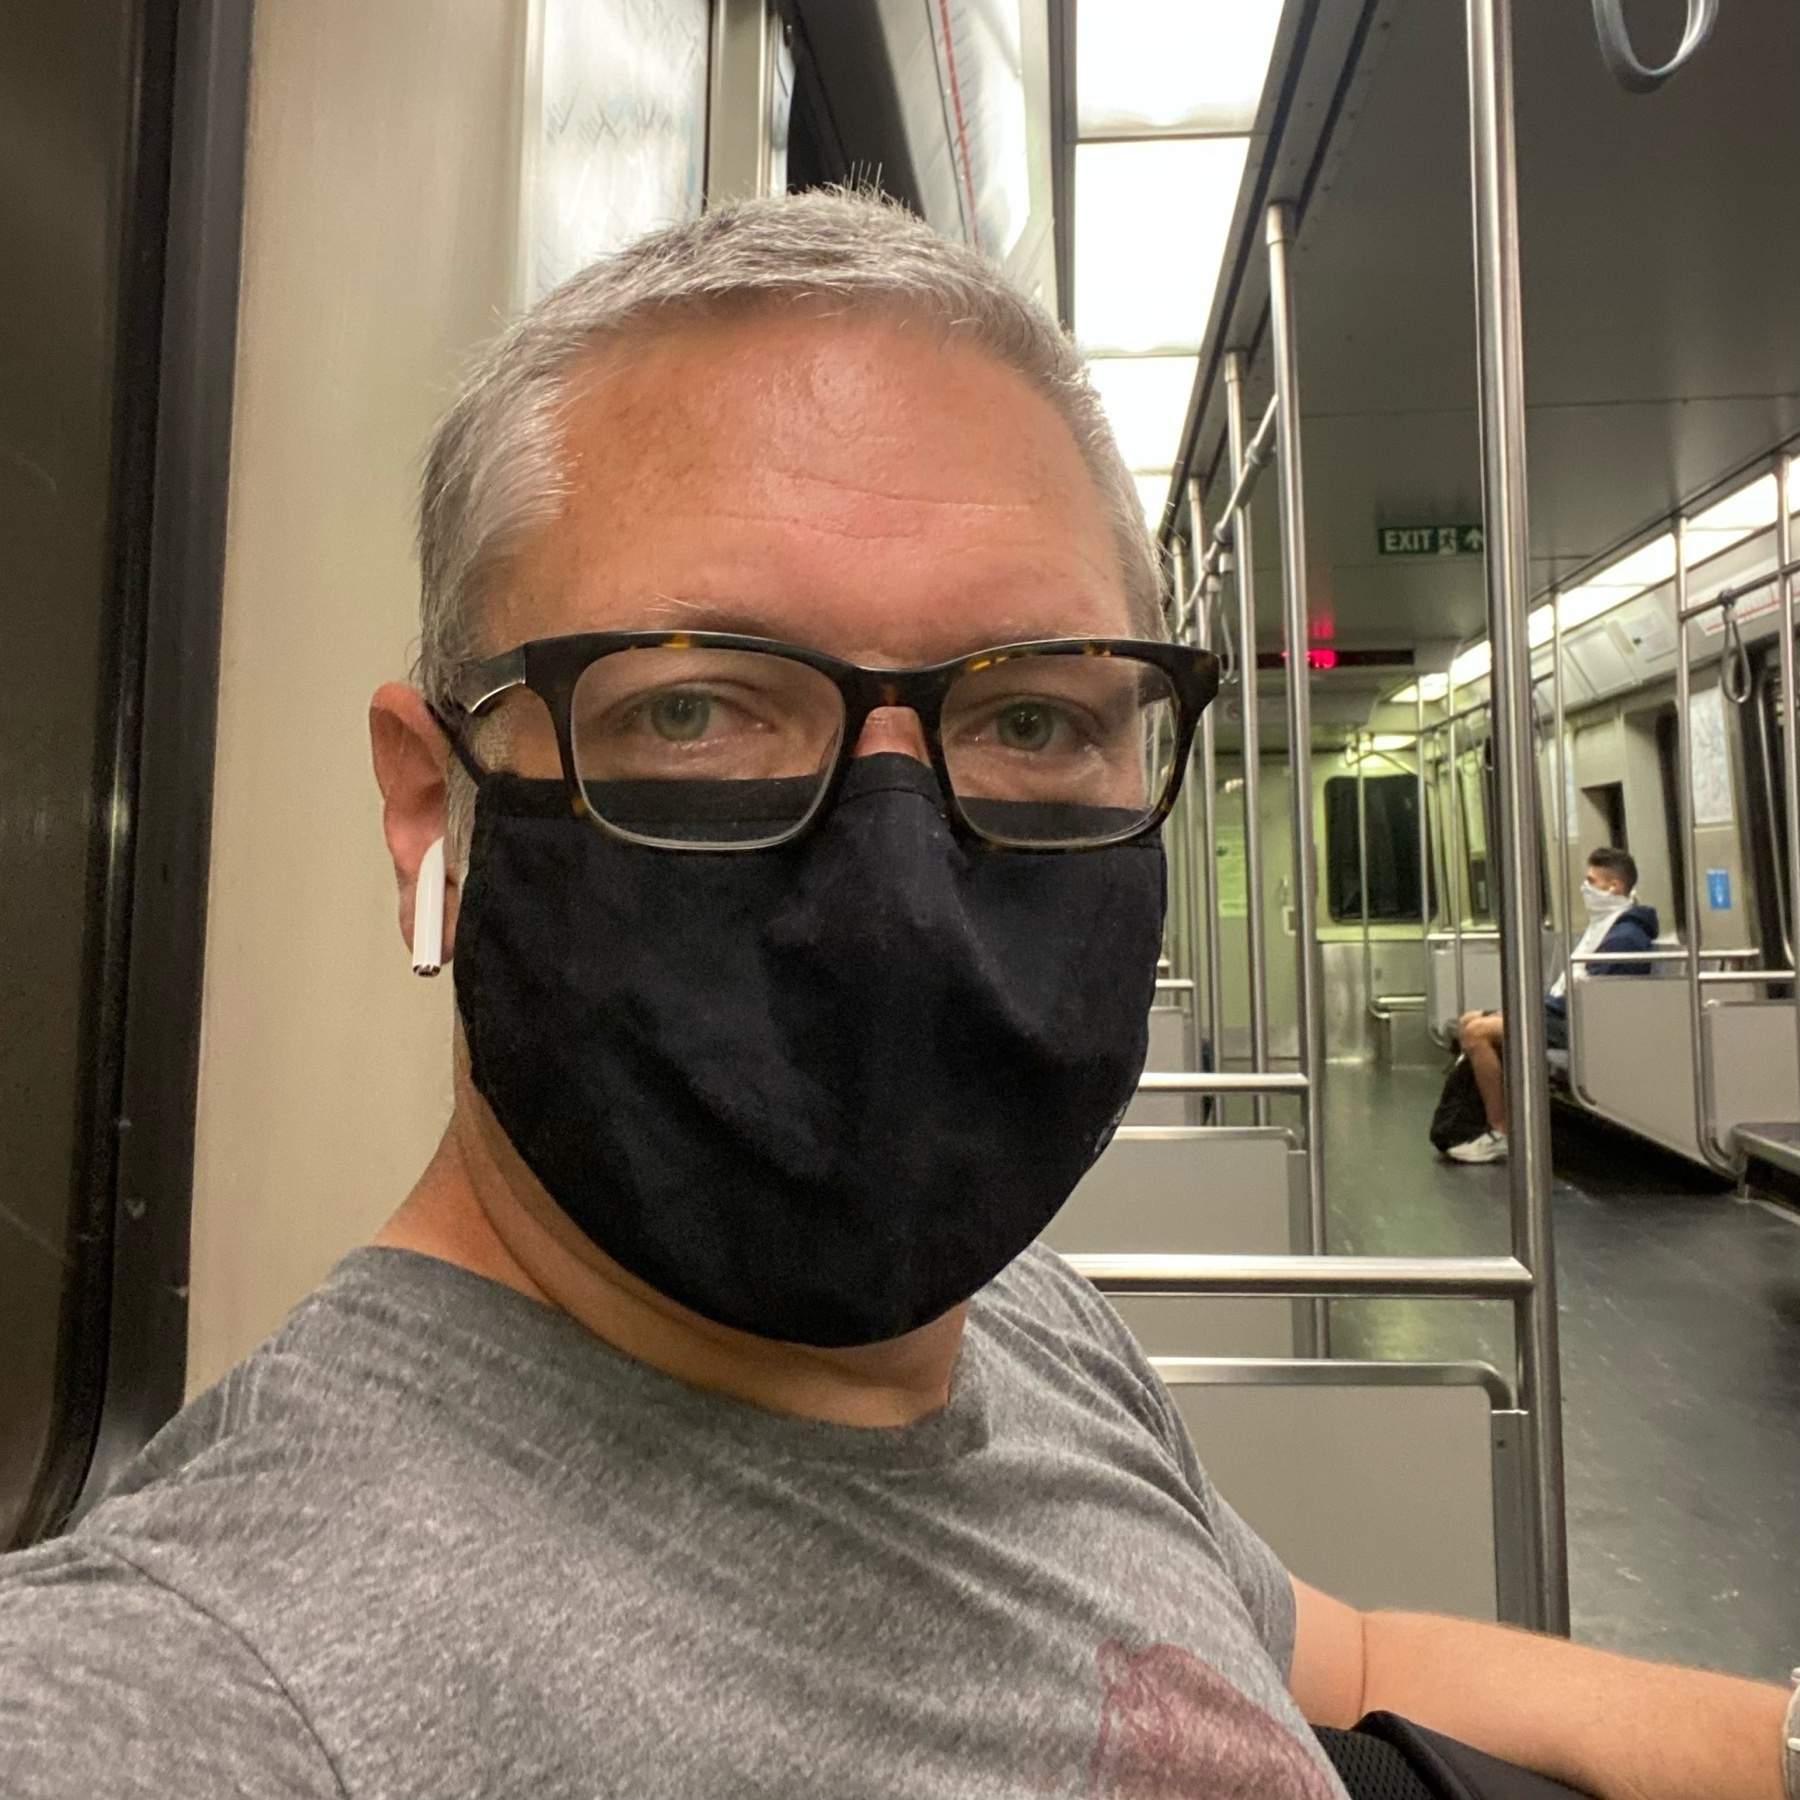 selfie wearing a black facemask on an almost empty subway car